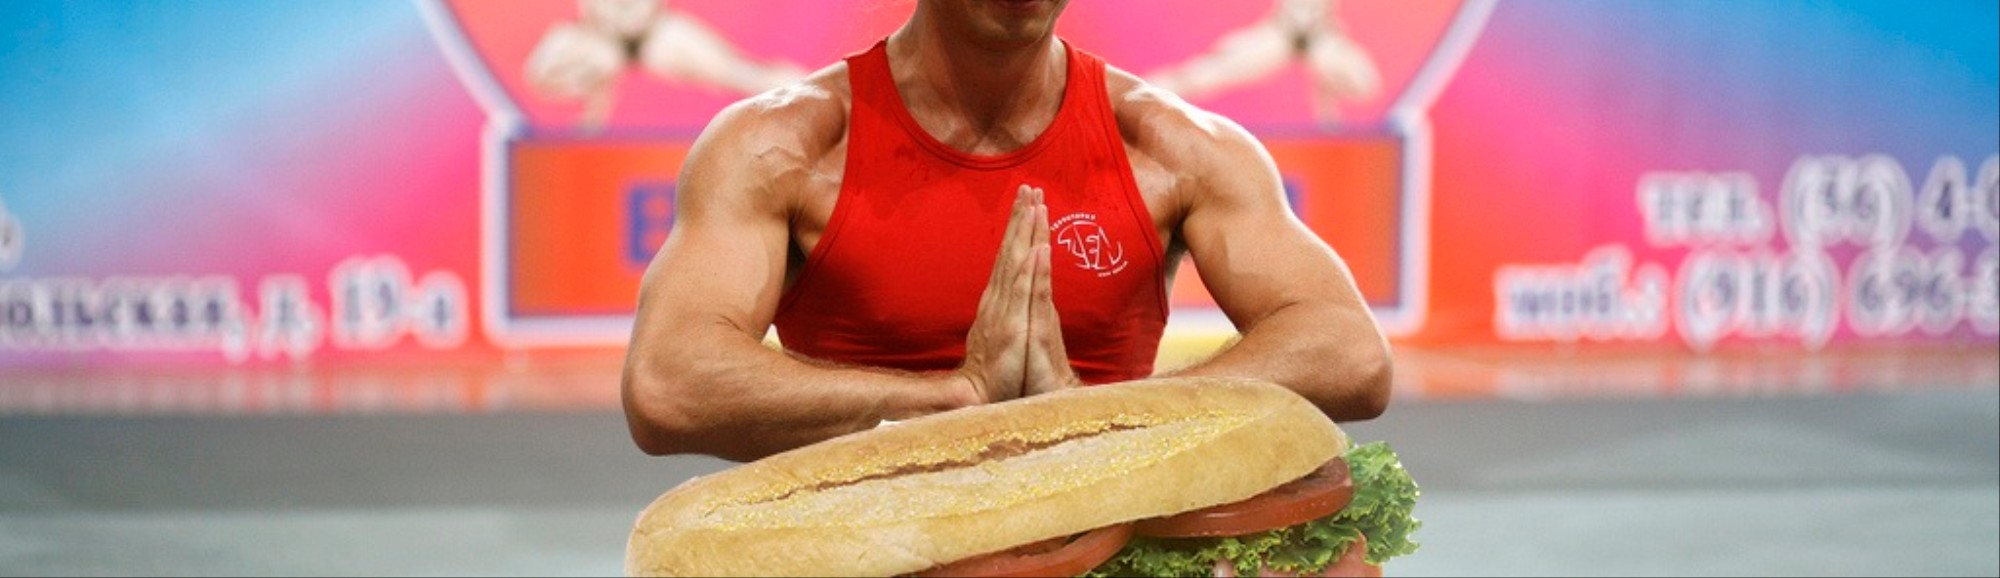 The Same Chemical Agent In Yoga Mat Is Found In Our Bread